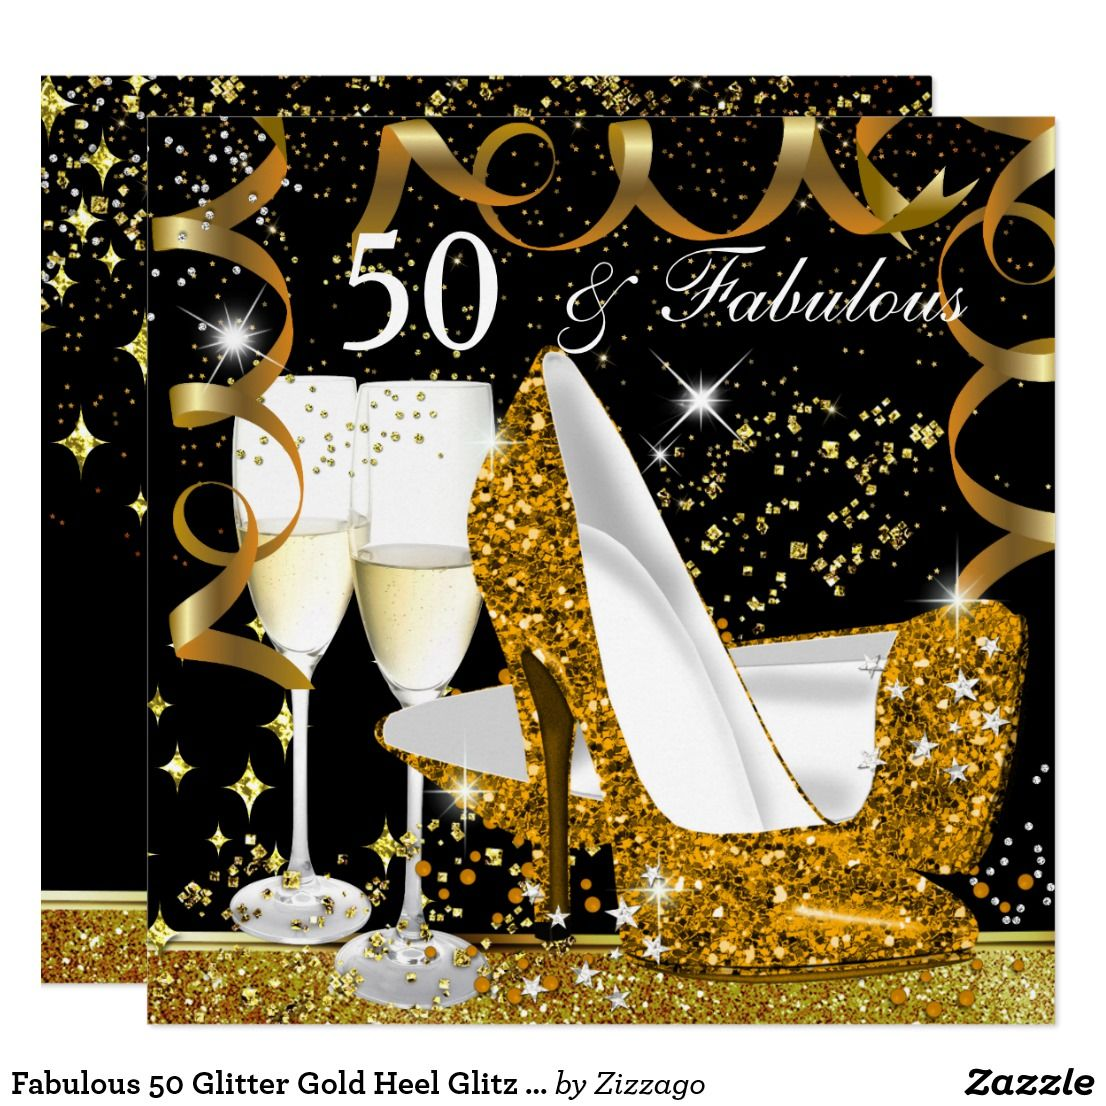 50 And Fabulous Text: Fabulous 50 Glitter Gold Heel Glitz Glam Party Invitation